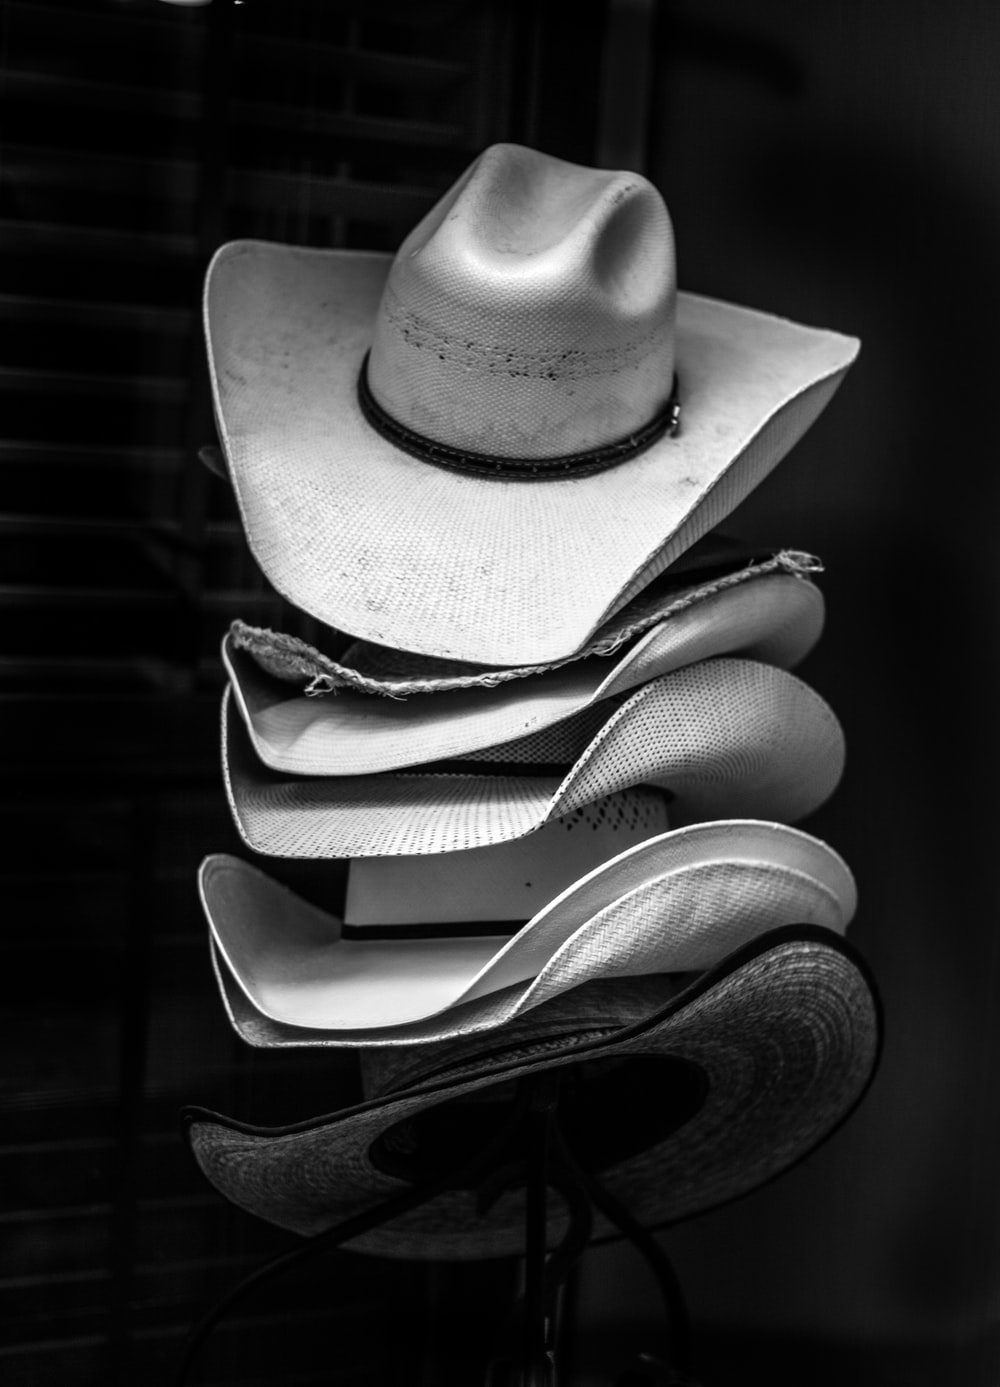 grayscale photography of piled cowboy hats